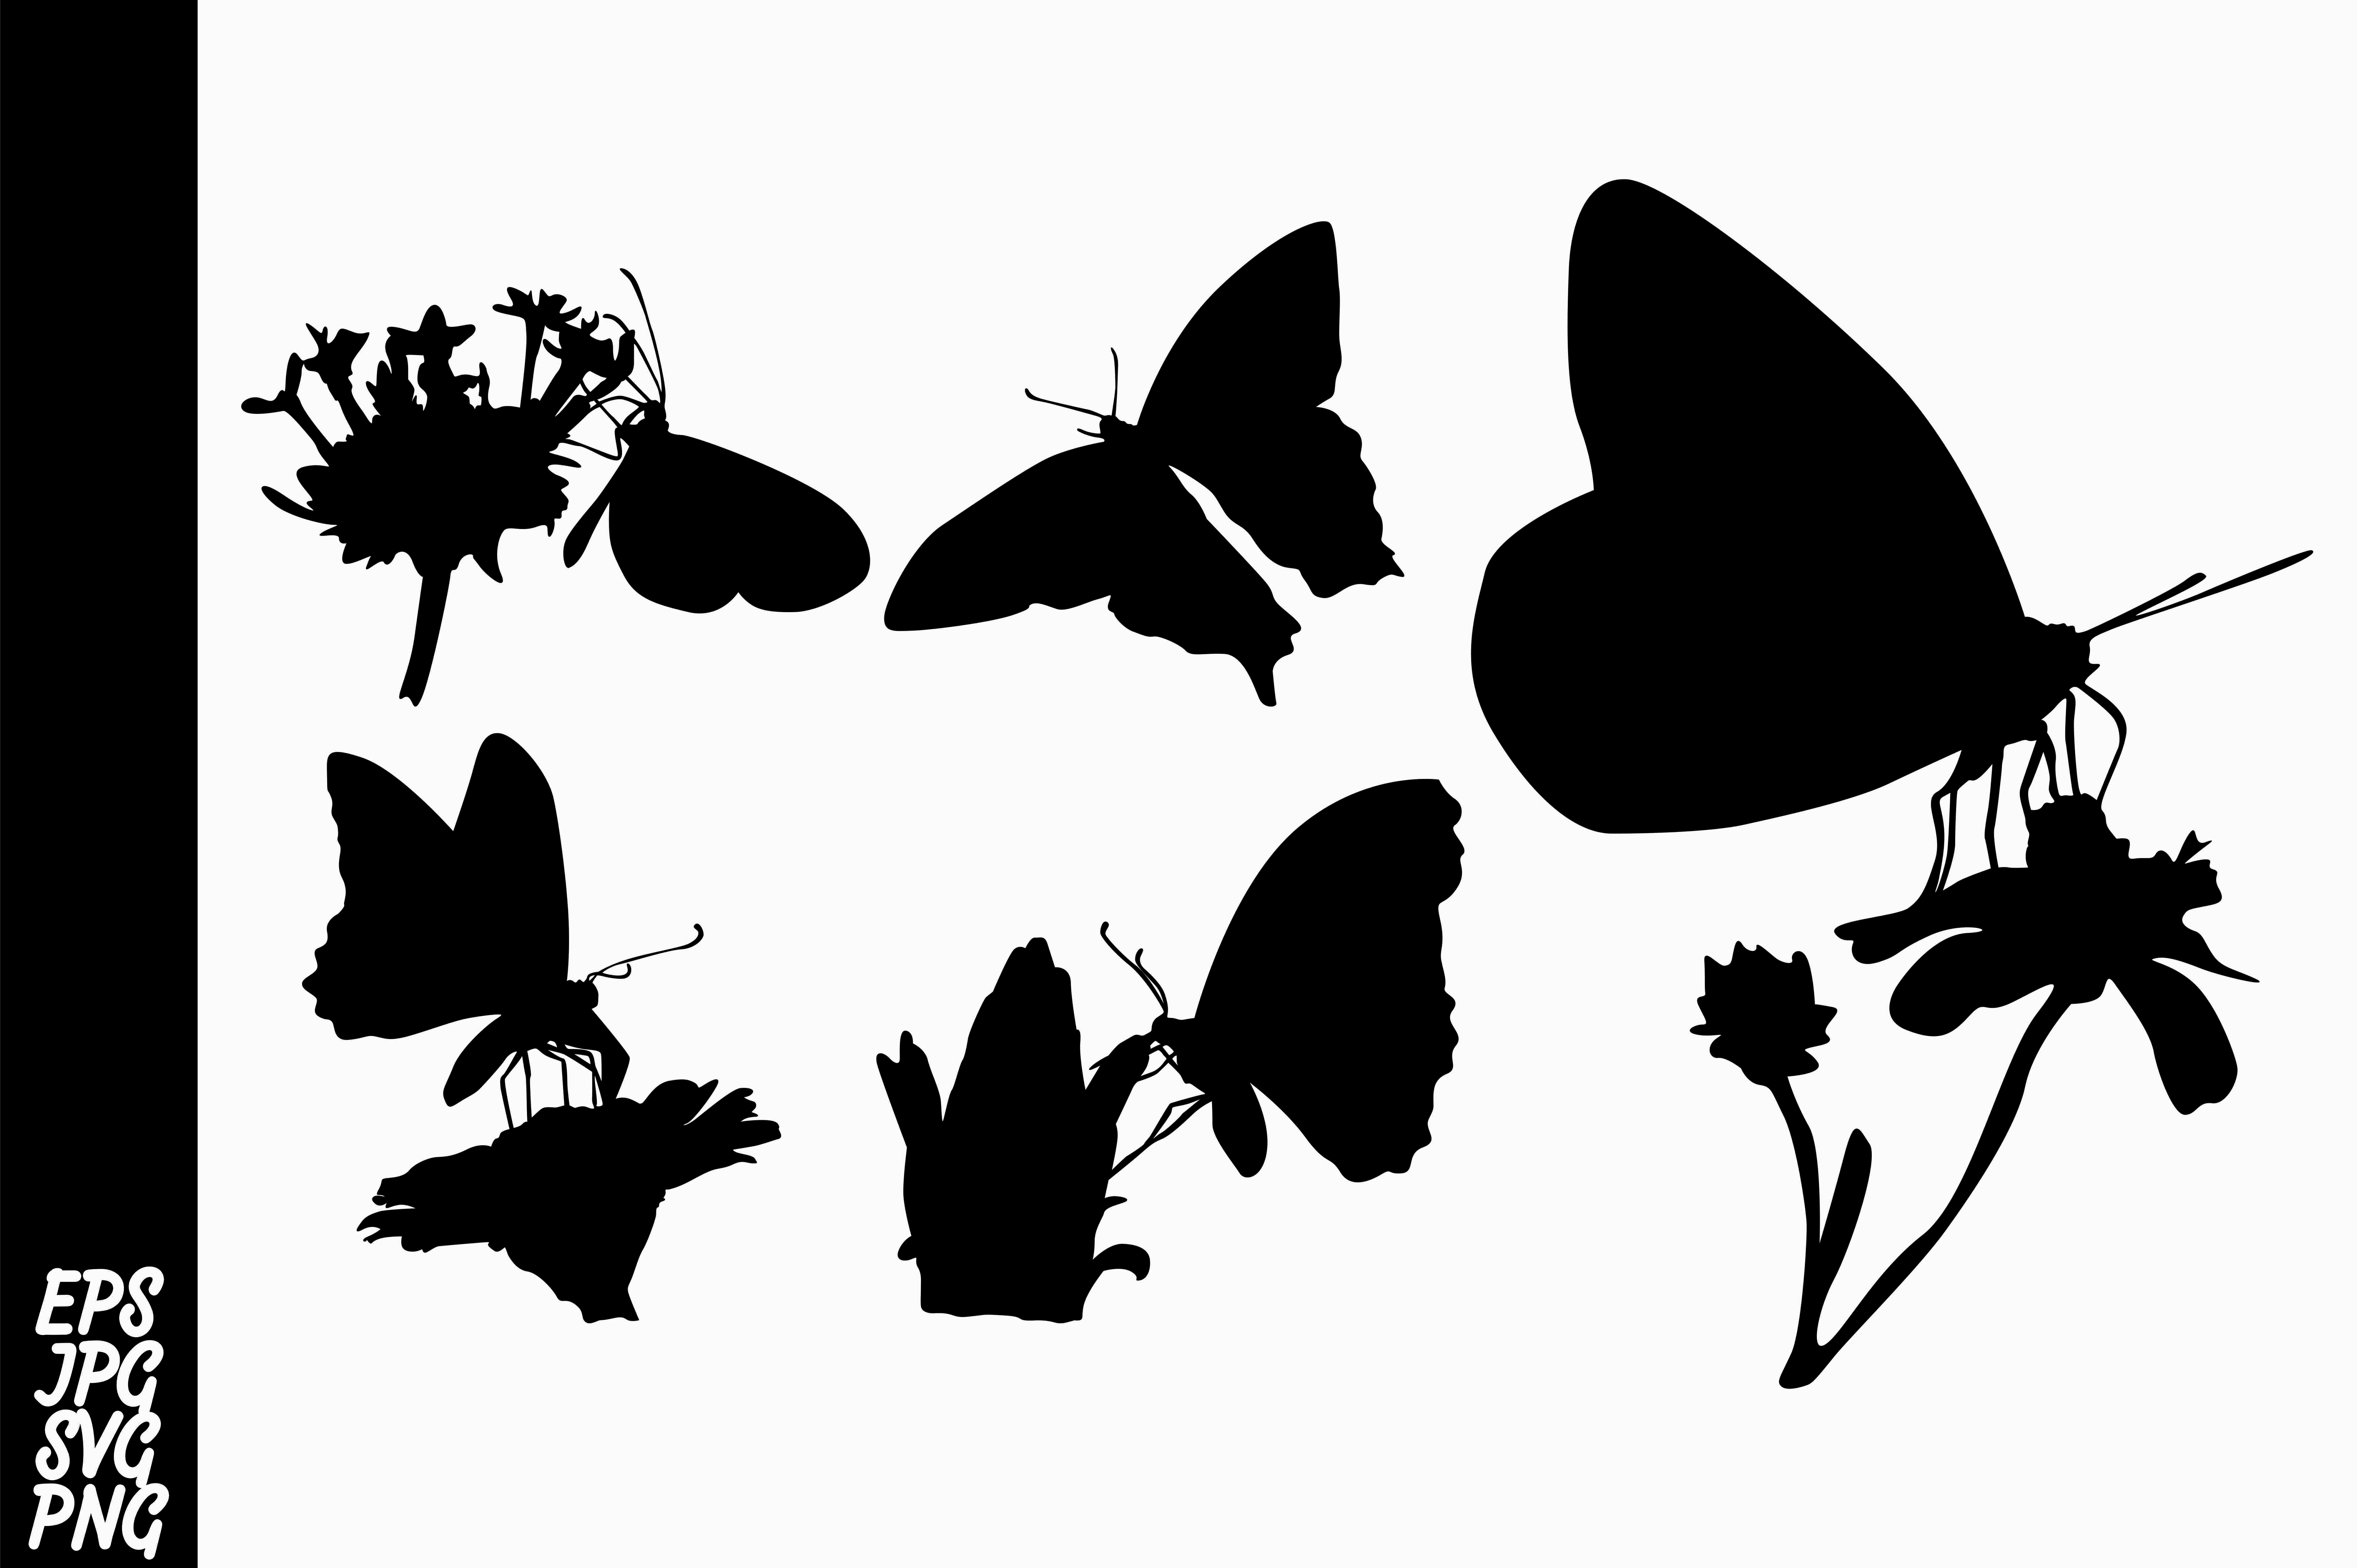 Download Free Butterfly Silhouette Svg Bundle Graphic By Arief Sapta Adjie Ii for Cricut Explore, Silhouette and other cutting machines.